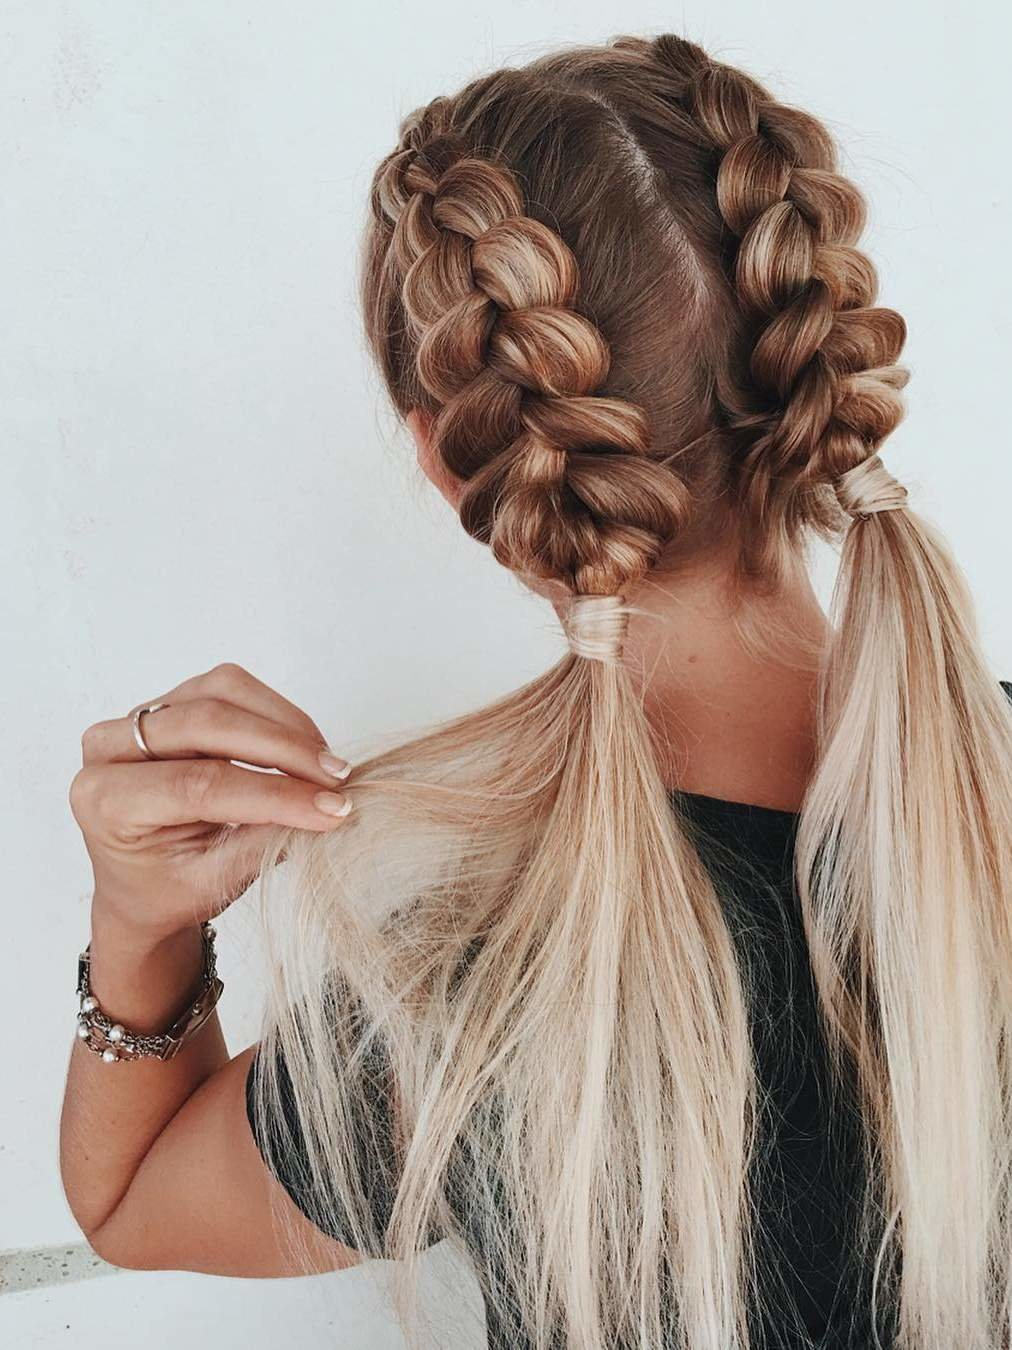 The Best 7 Braided Hairstyles That People Are Loving On Pinterest Pictures